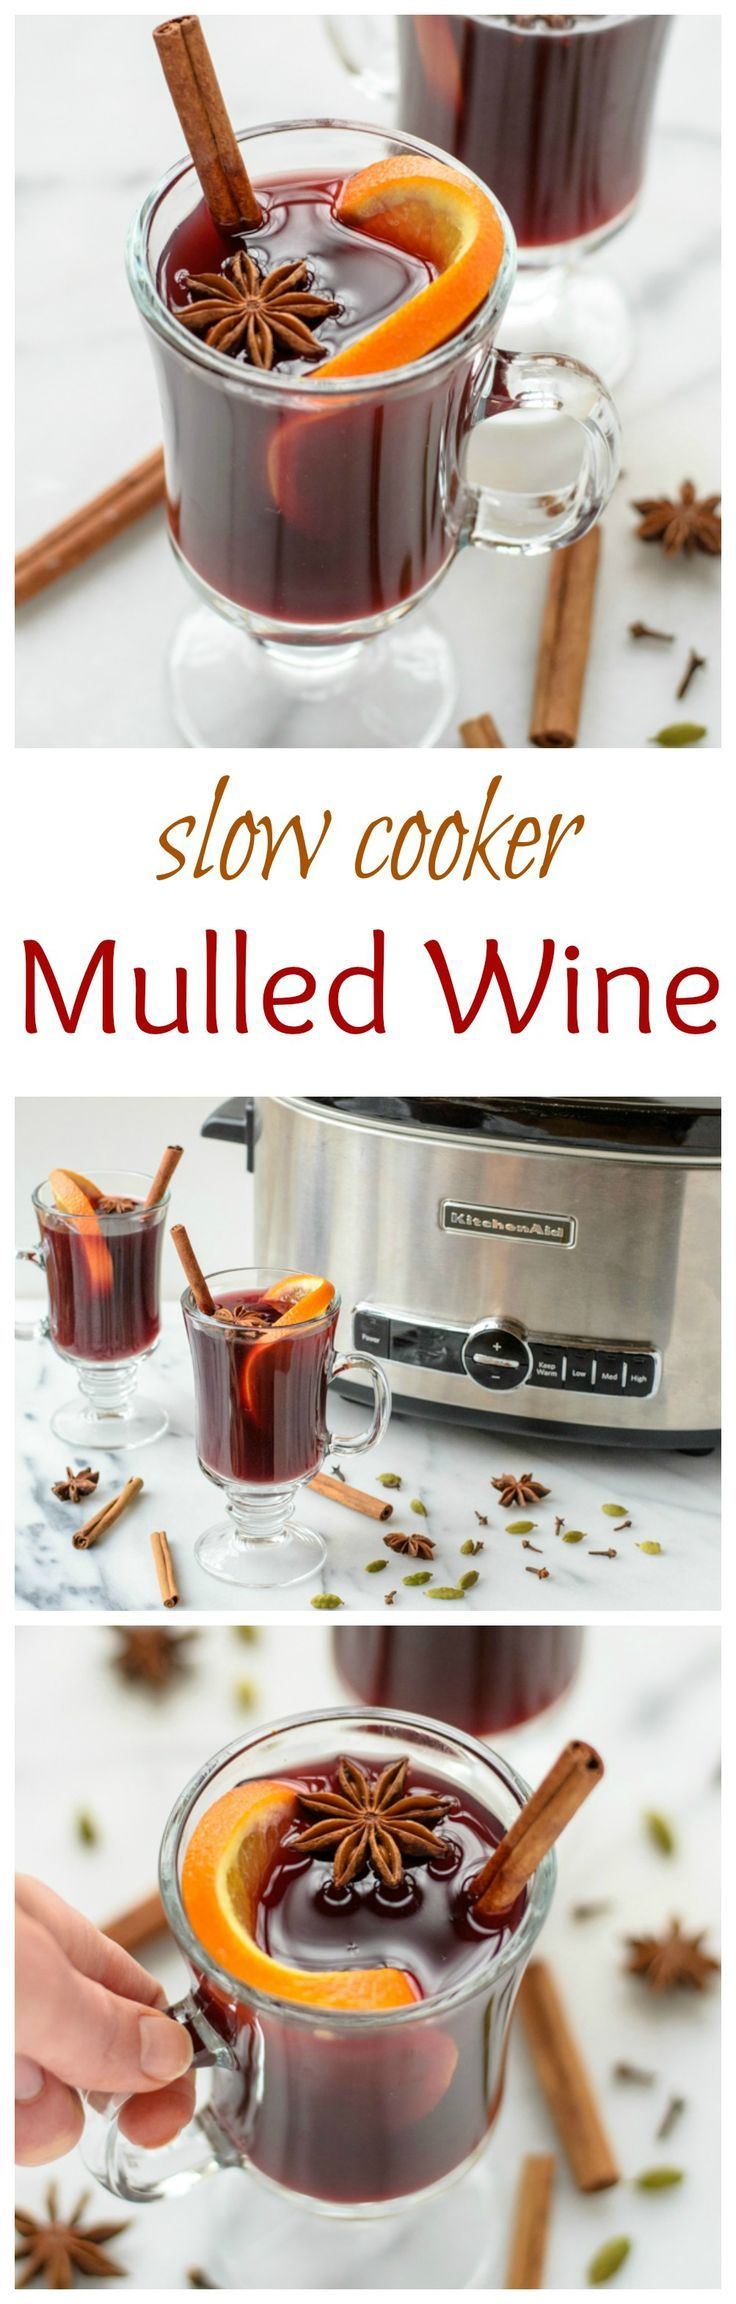 Slow-Cooker Cocktail Recipes | POPSUGAR Food